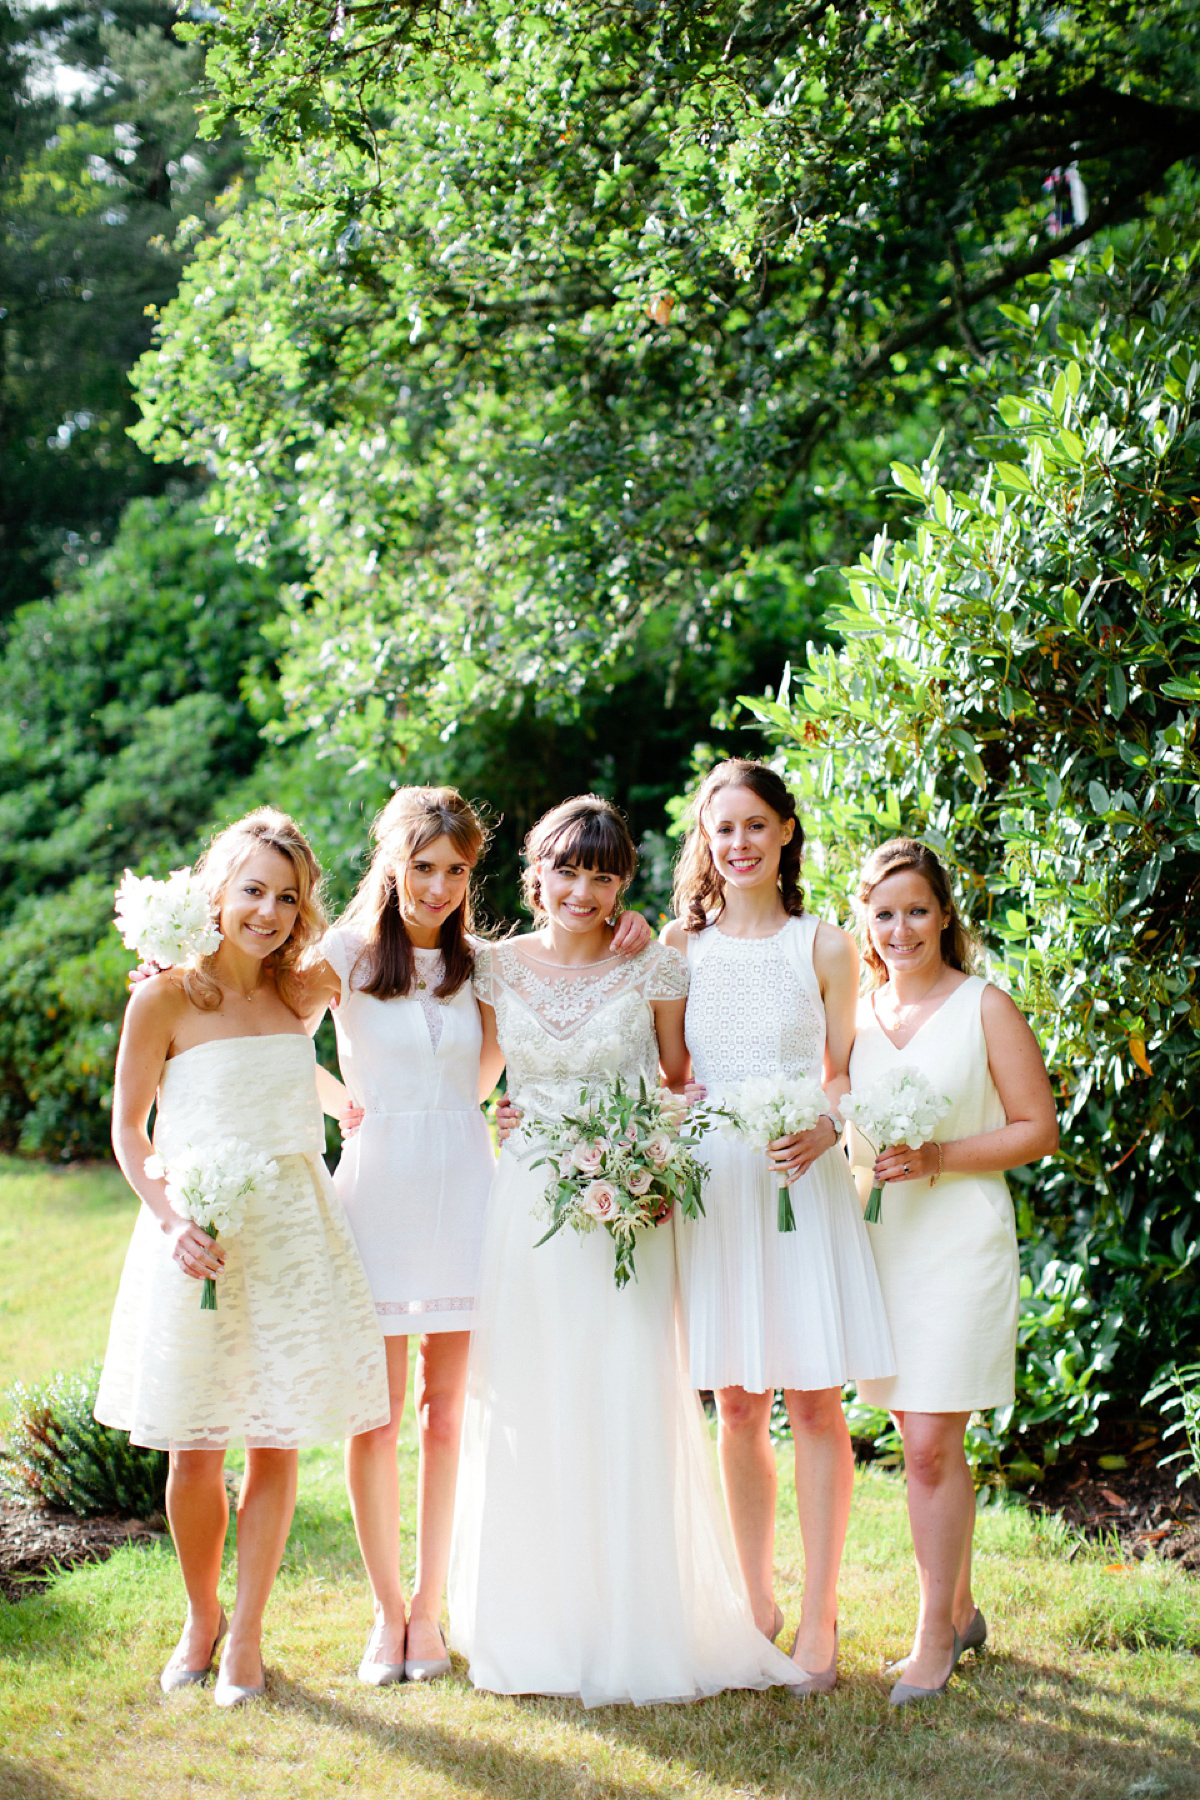 Halfpenny London Elegance for an English Country Garden Wedding at ...